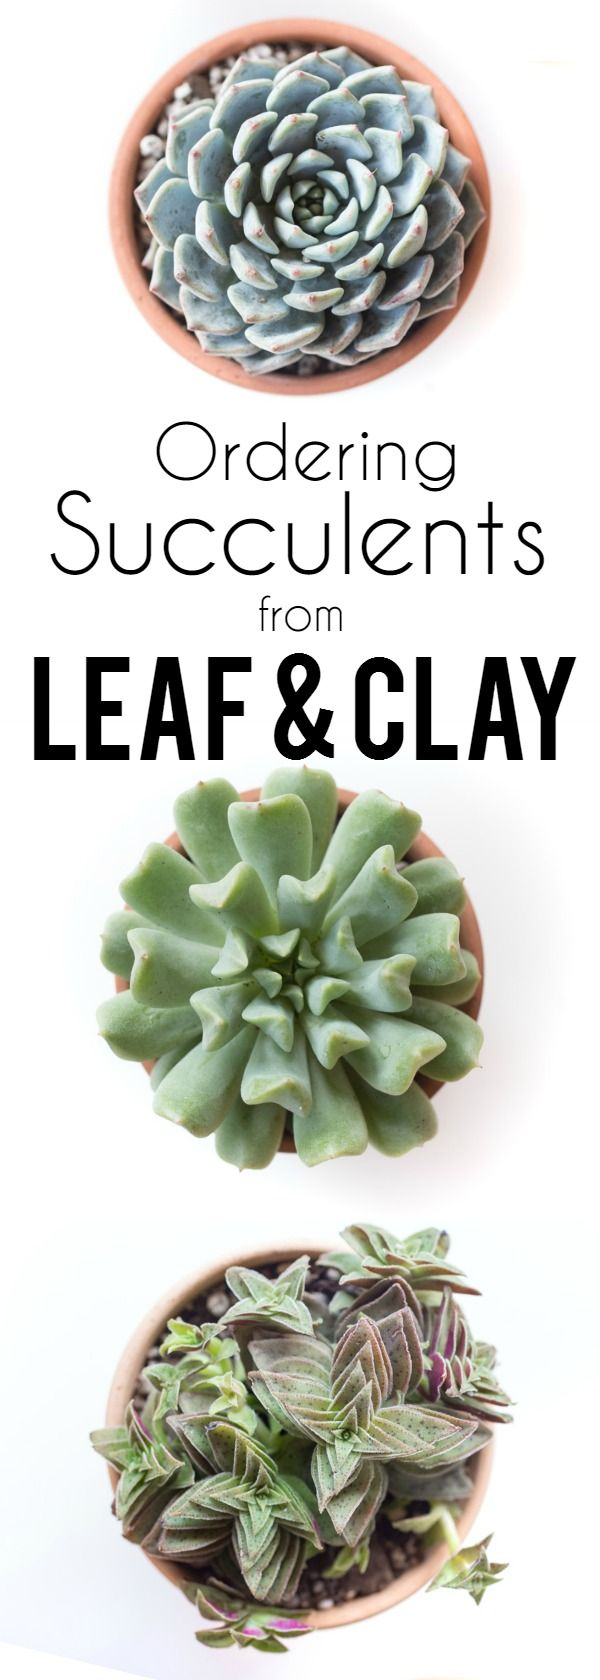 Ever wonder where to buy succulents online? Leaf and Clay has the best selection of succulents and cactus plants (plus there's even a way to get them free! → https://www.leafandclay.co/collections/succulents?rfsn=537287.d46d5)